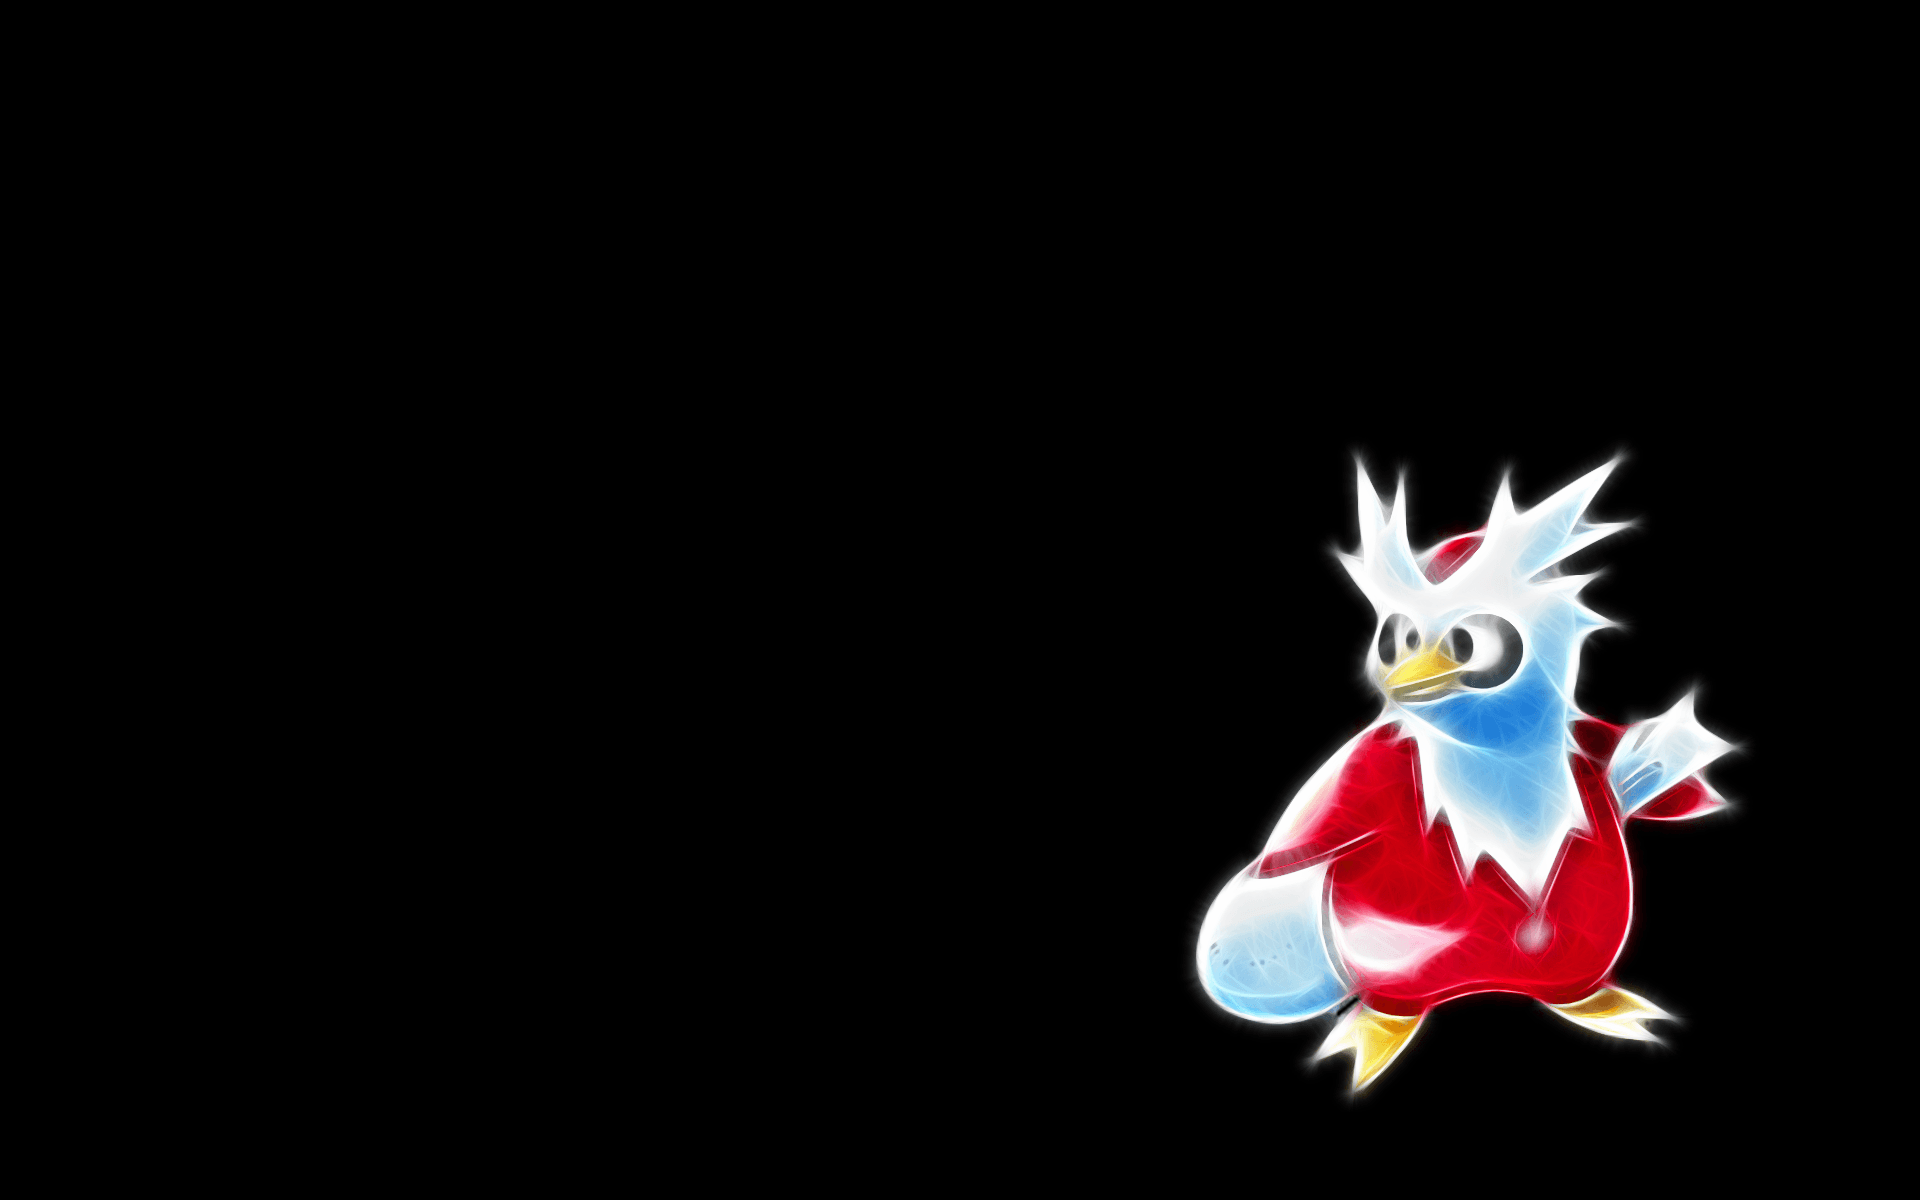 Delibird Wallpaper 48183 1920x1200 px ~ HDWallSource.com